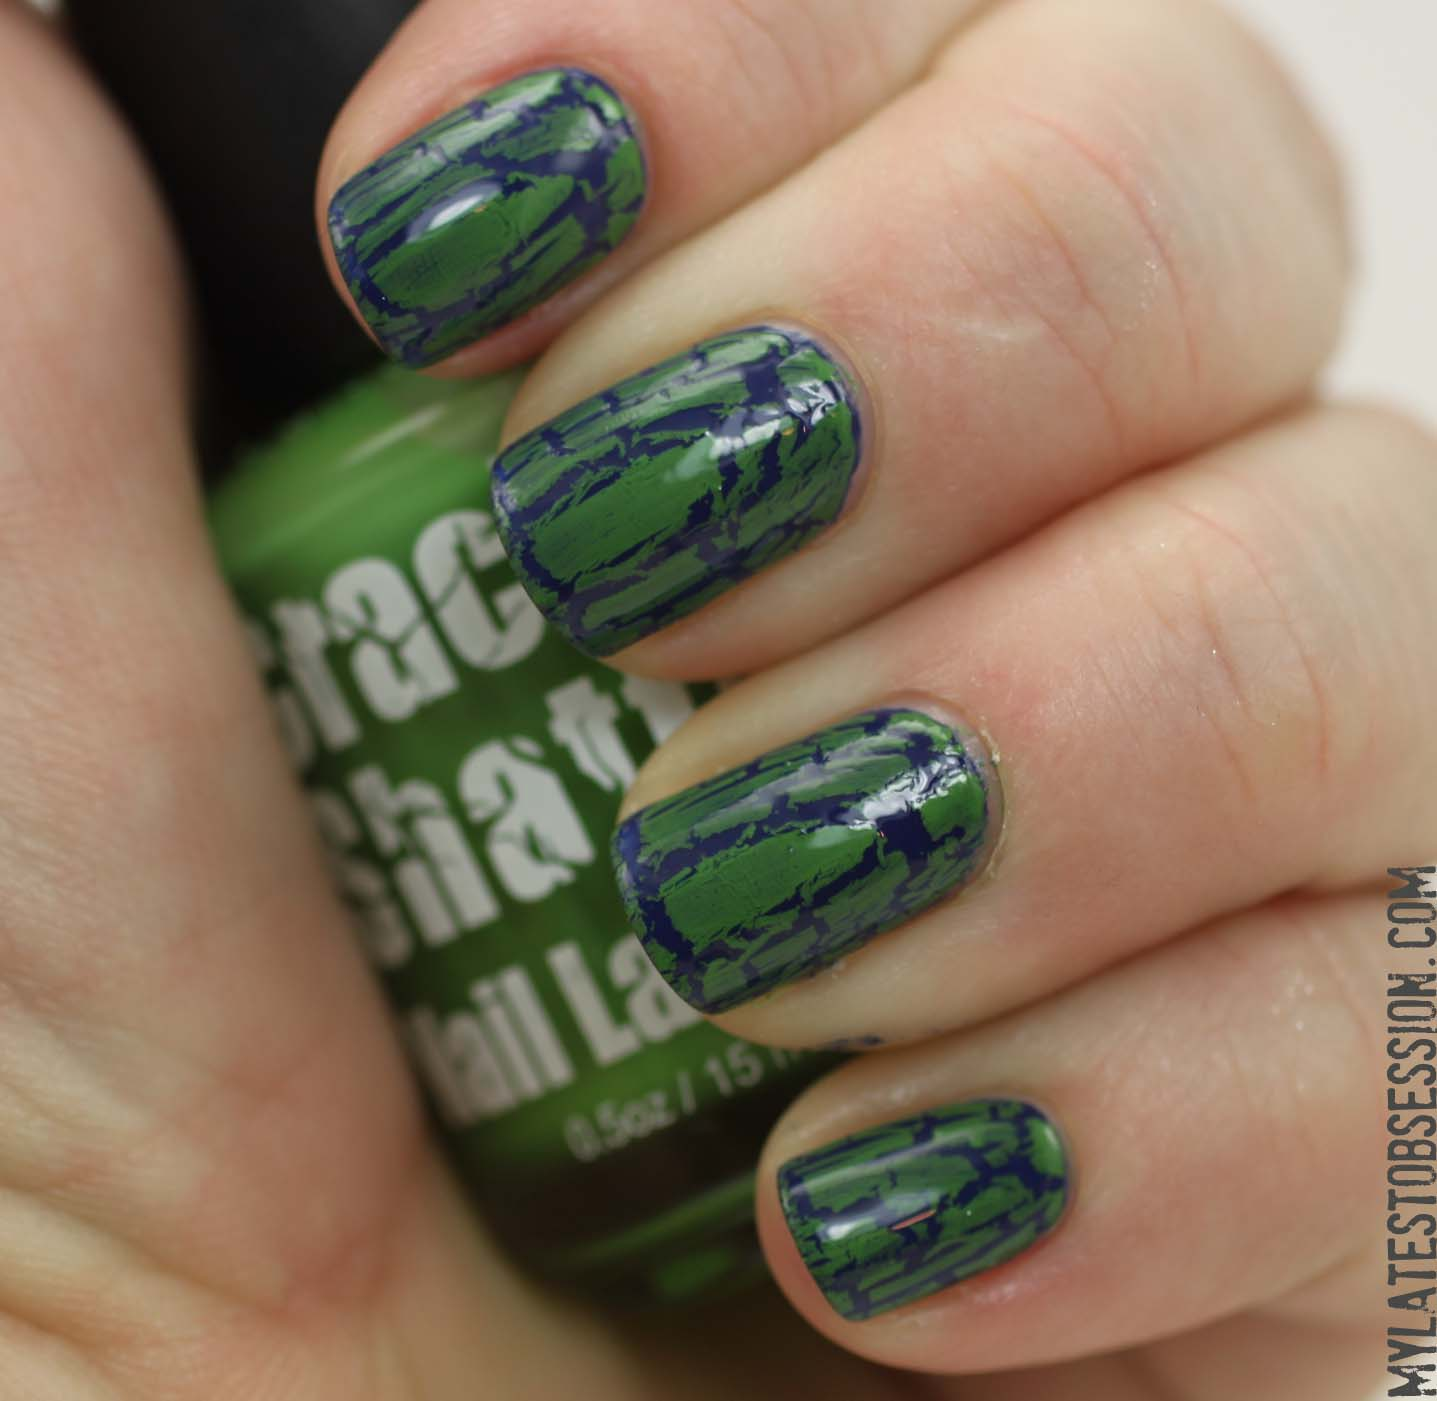 Crackle Shatter green over Sally Hansen Thinking of Blue